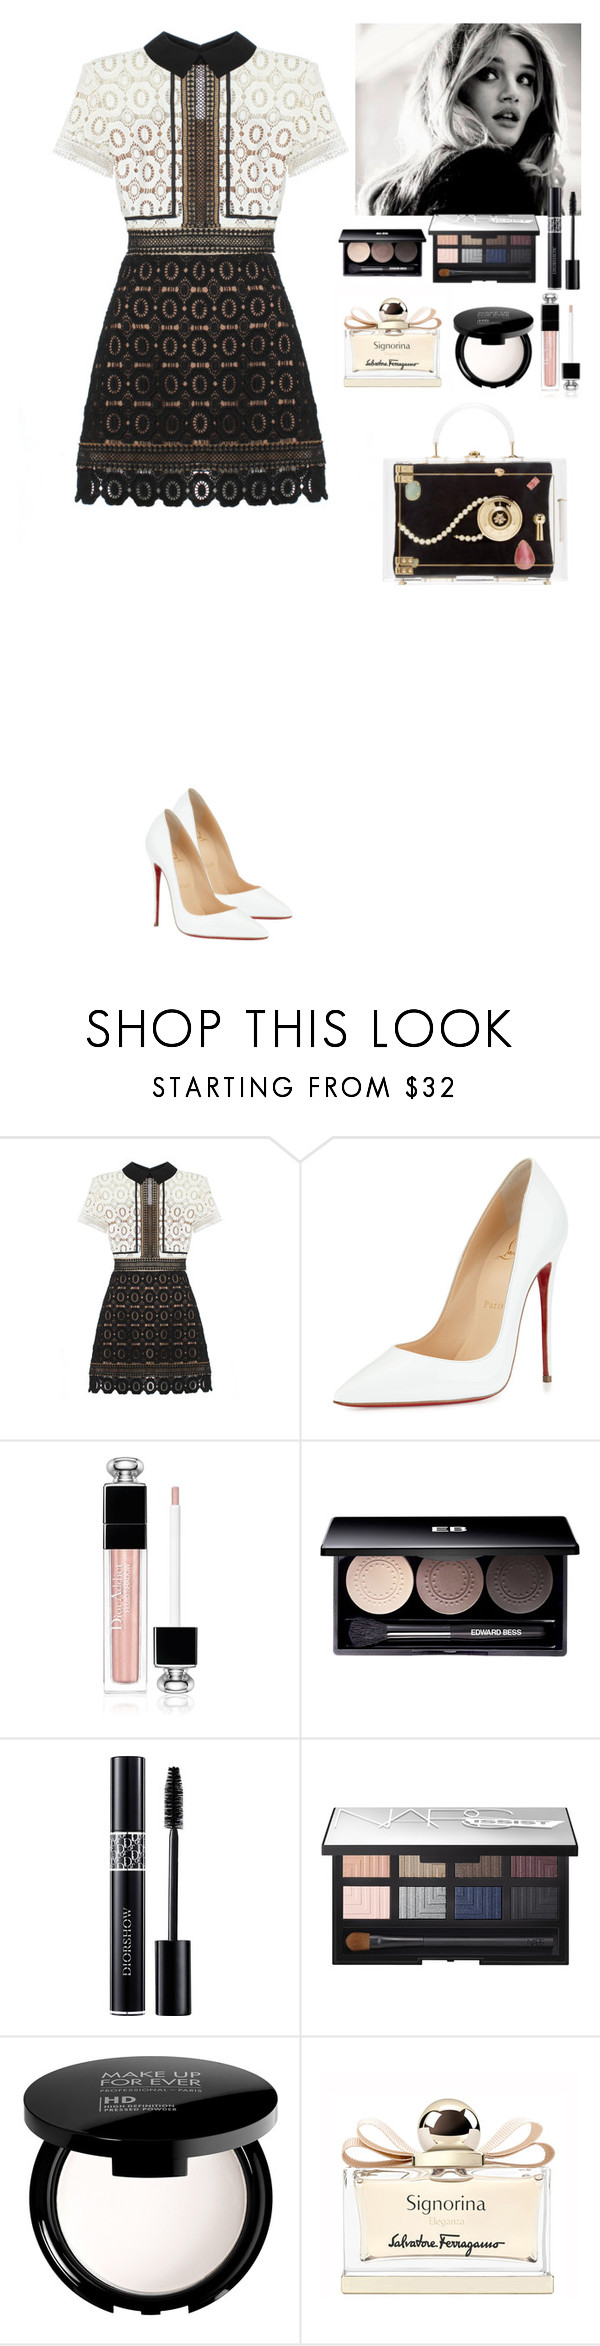 """""""Fab outfit"""" by eliza-redkina ❤ liked on Polyvore featuring self-portrait, Christian Louboutin, Christian Dior, Edward Bess, NARS Cosmetics, MAKE UP FOR EVER, Salvatore Ferragamo, Charlotte Olympia, women's clothing and women's fashion"""